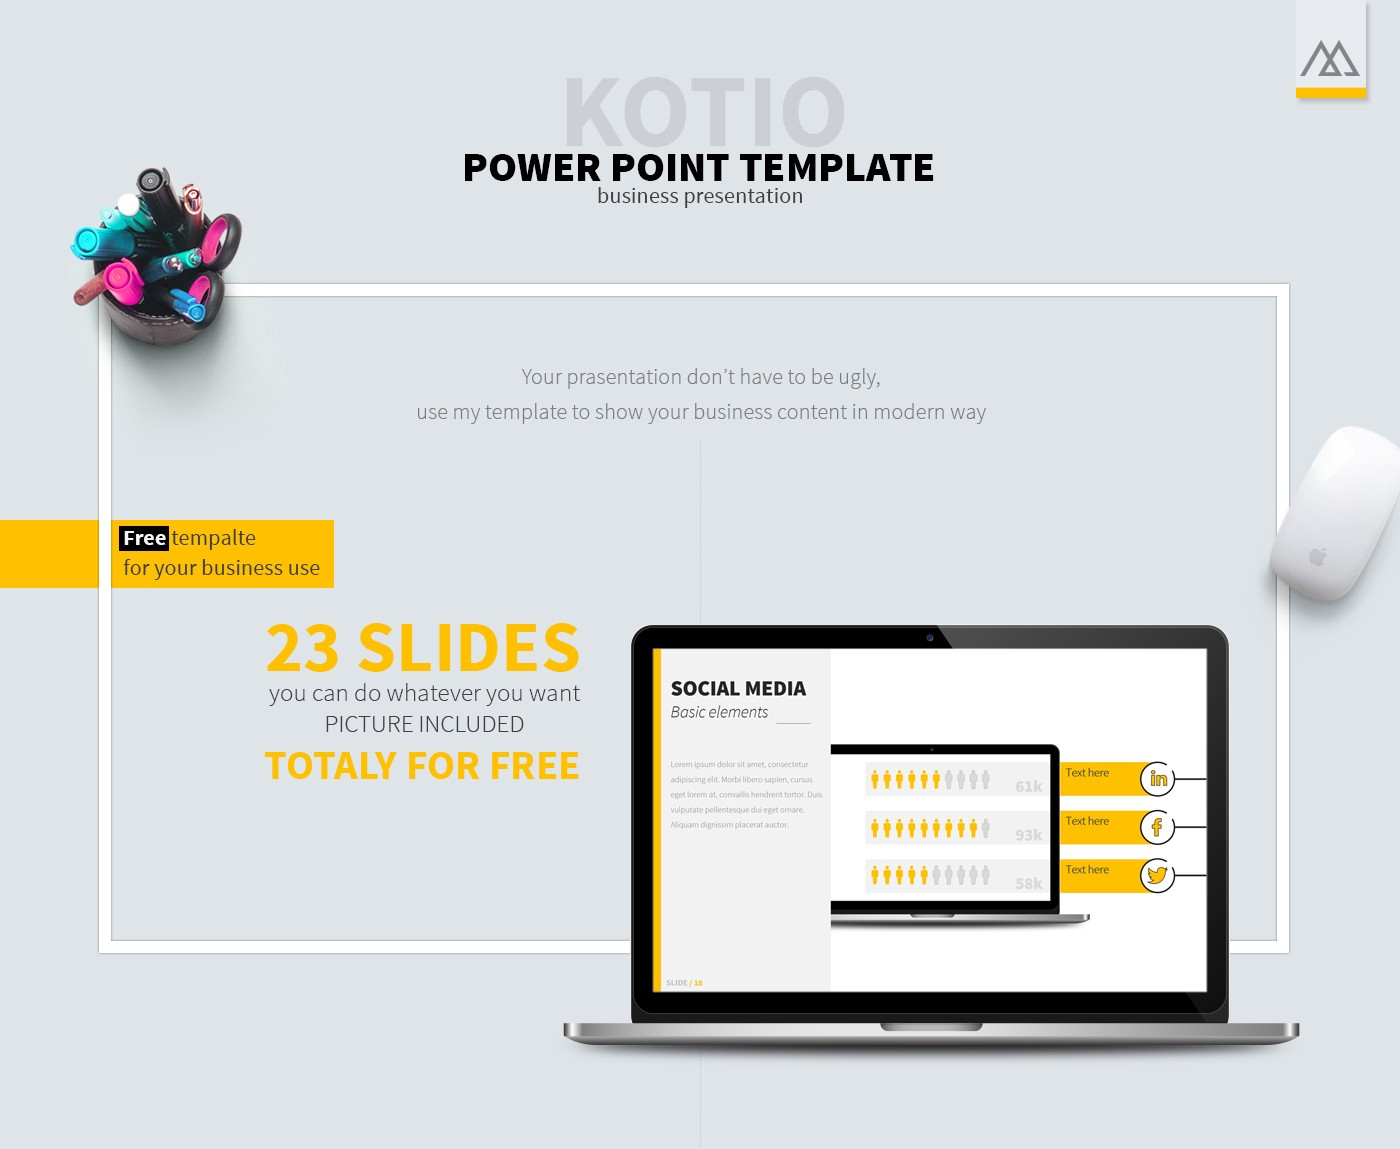 40 free cool powerpoint templates for presentations download friedricerecipe Image collections